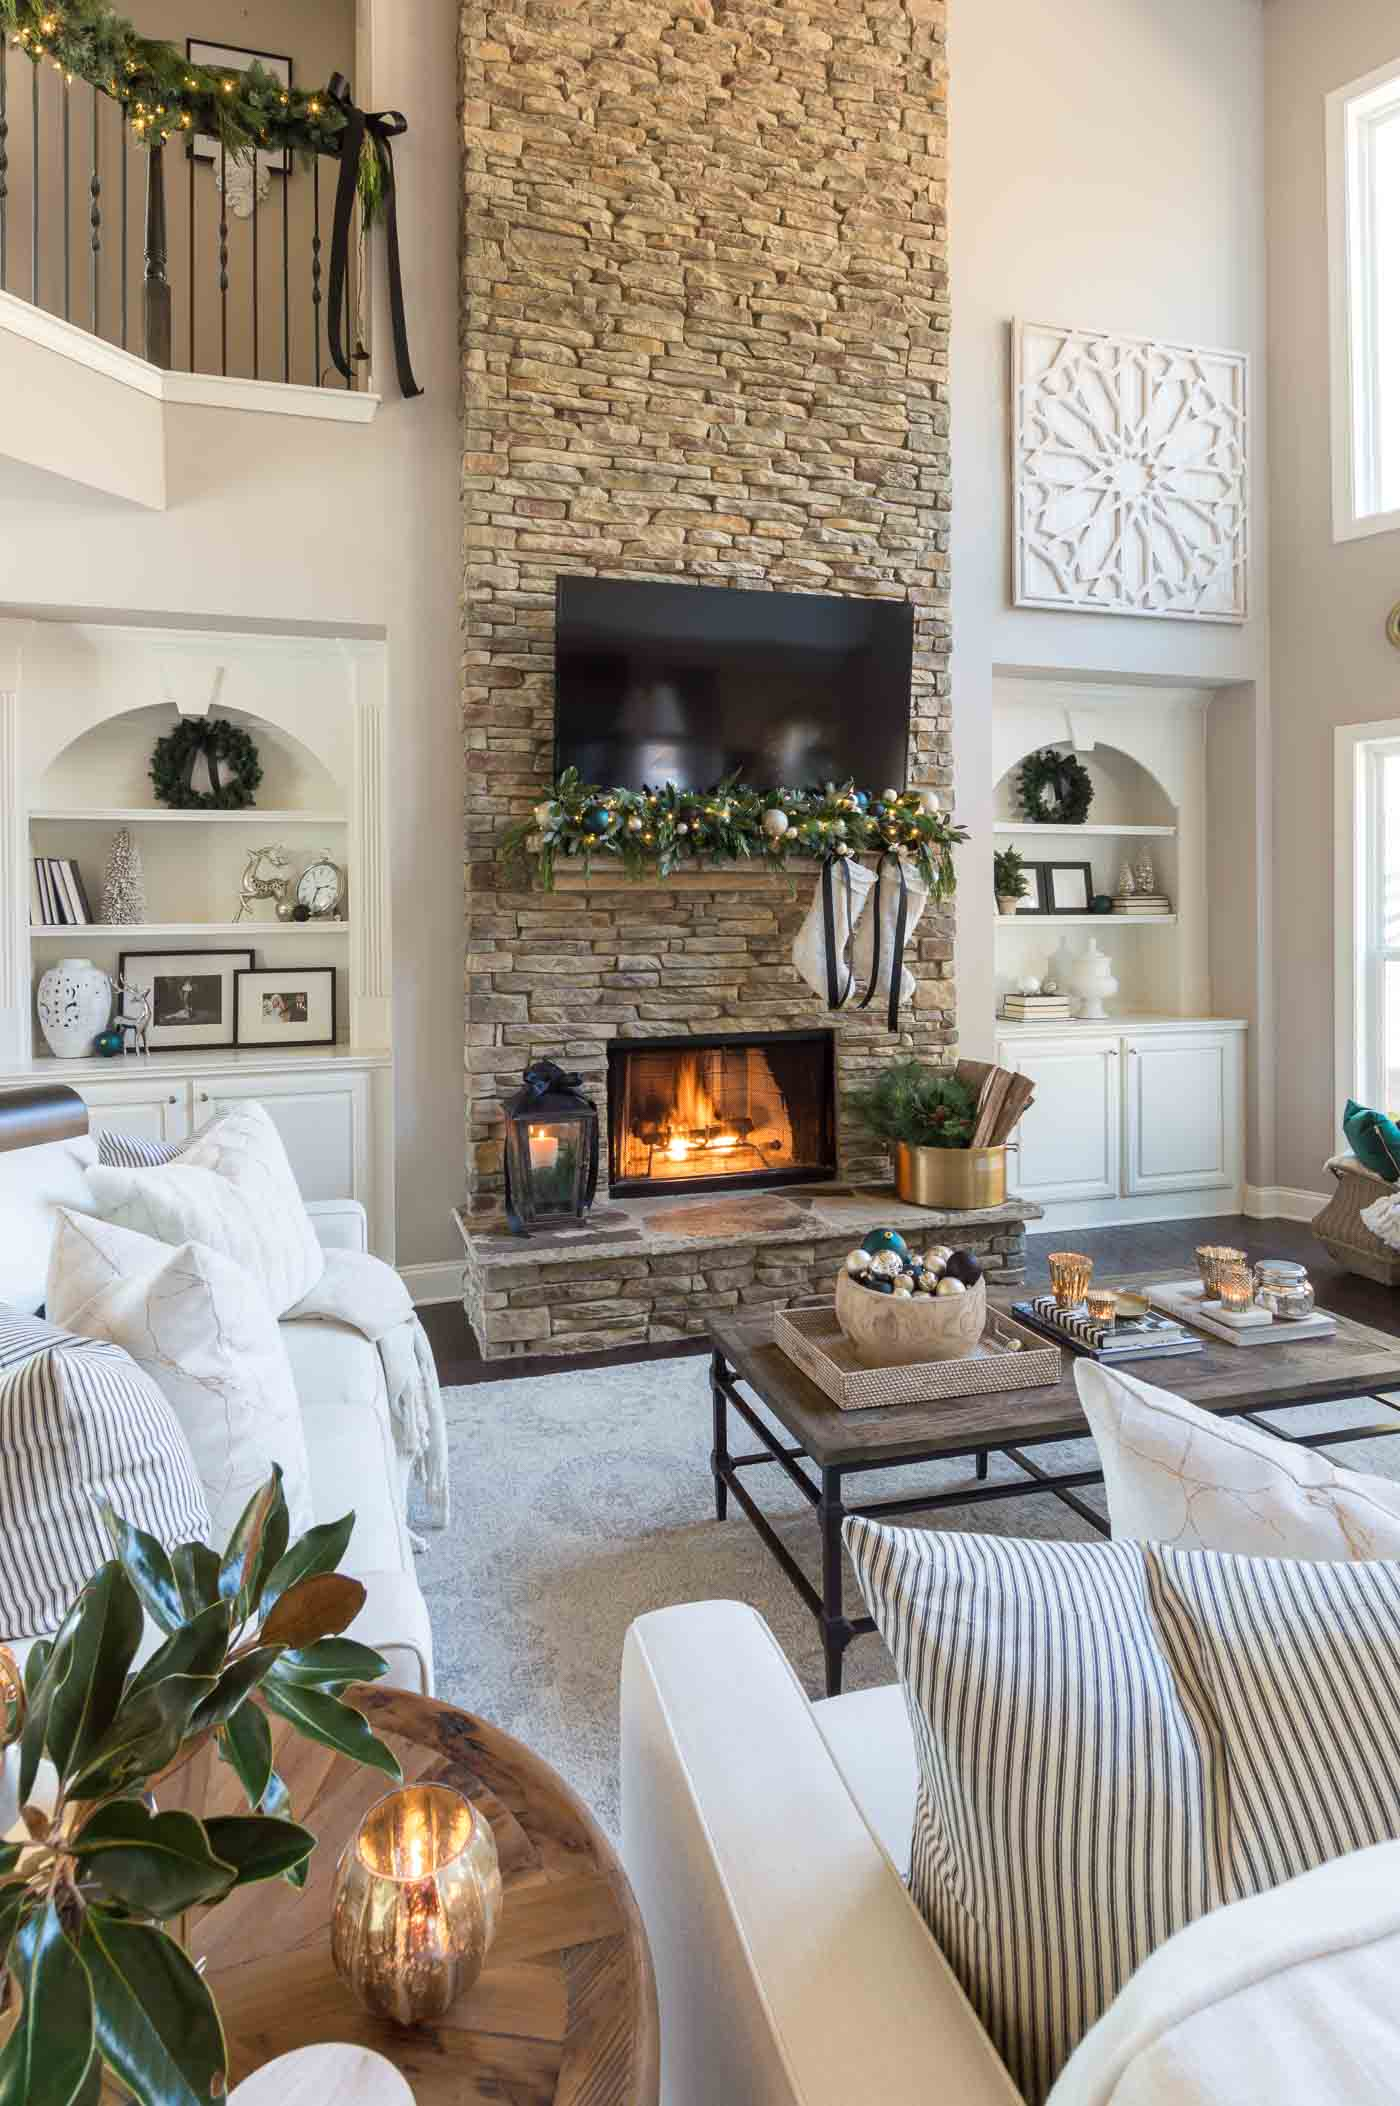 Simple and elegant Christmas decorations in the living room